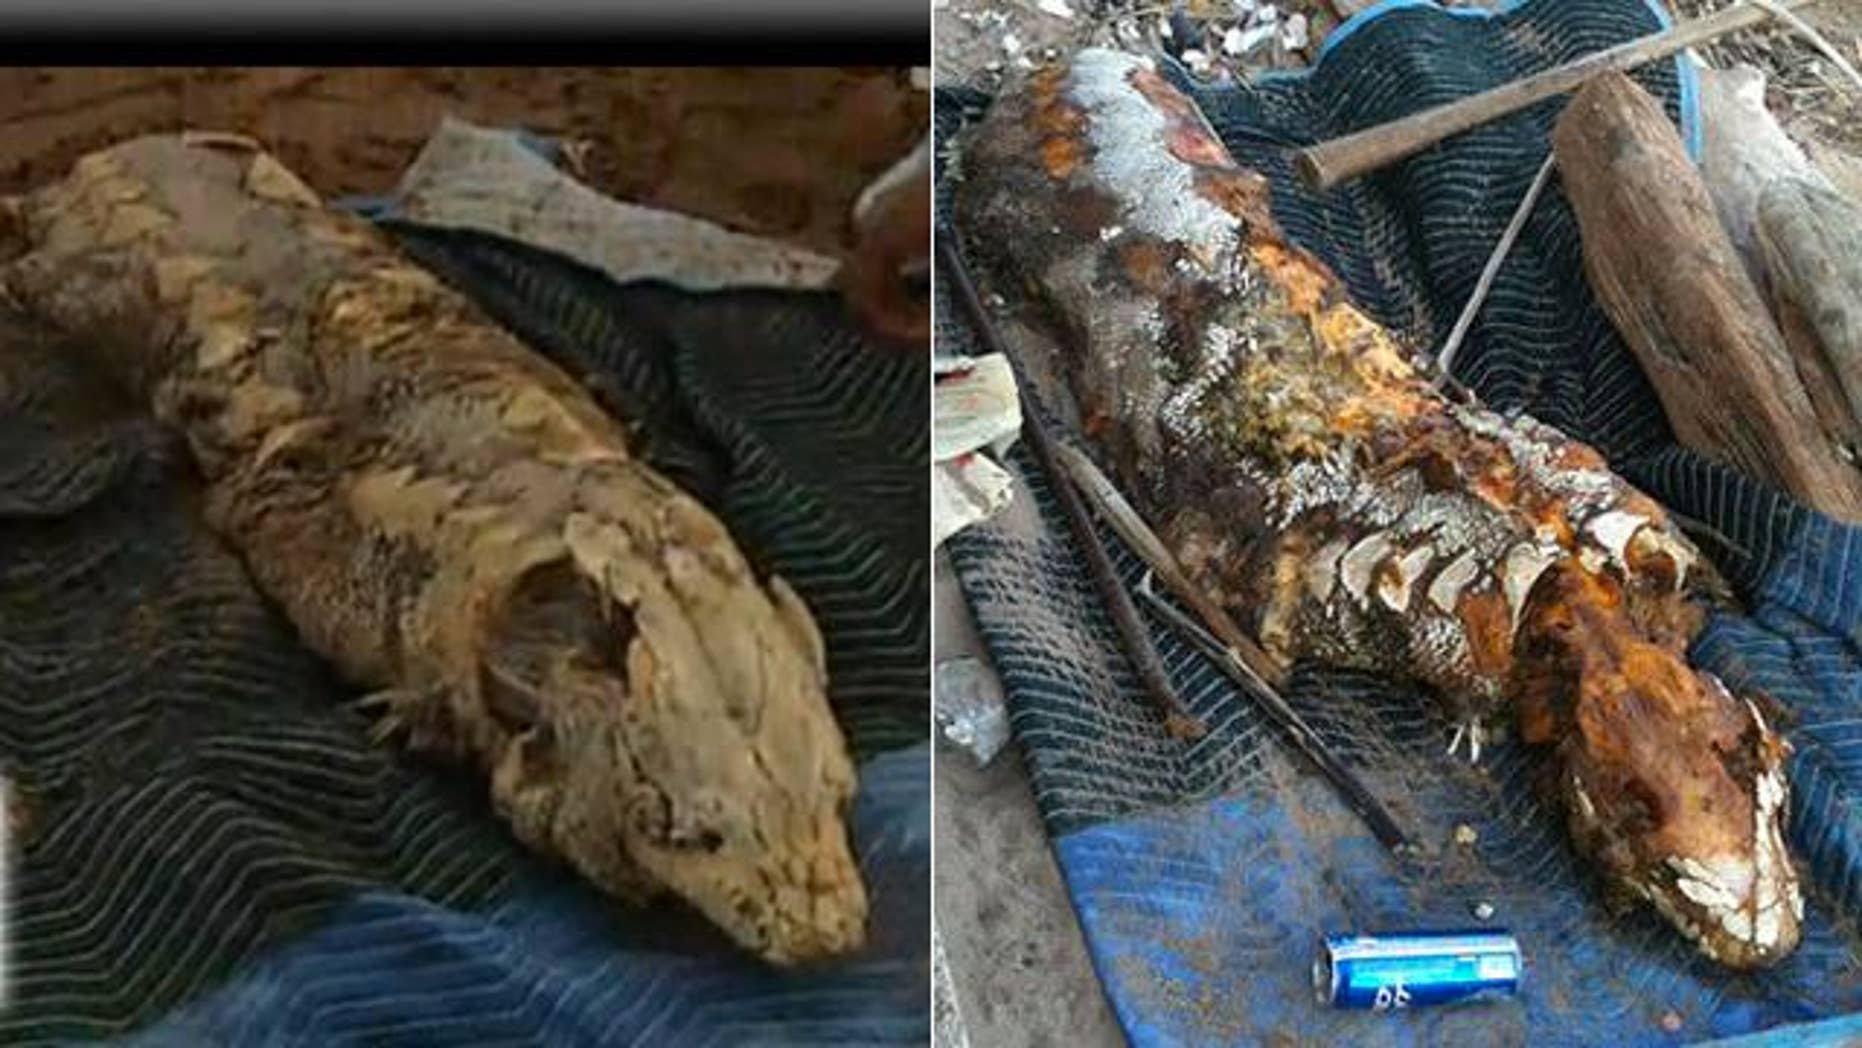 A 'sea monster' has washed up beneath the Brooklyn Bridge in New York. At left, the creature on May 21 in a frame from a NY1 video. At right, the beast 5 days later, as seen on Gawker.com.